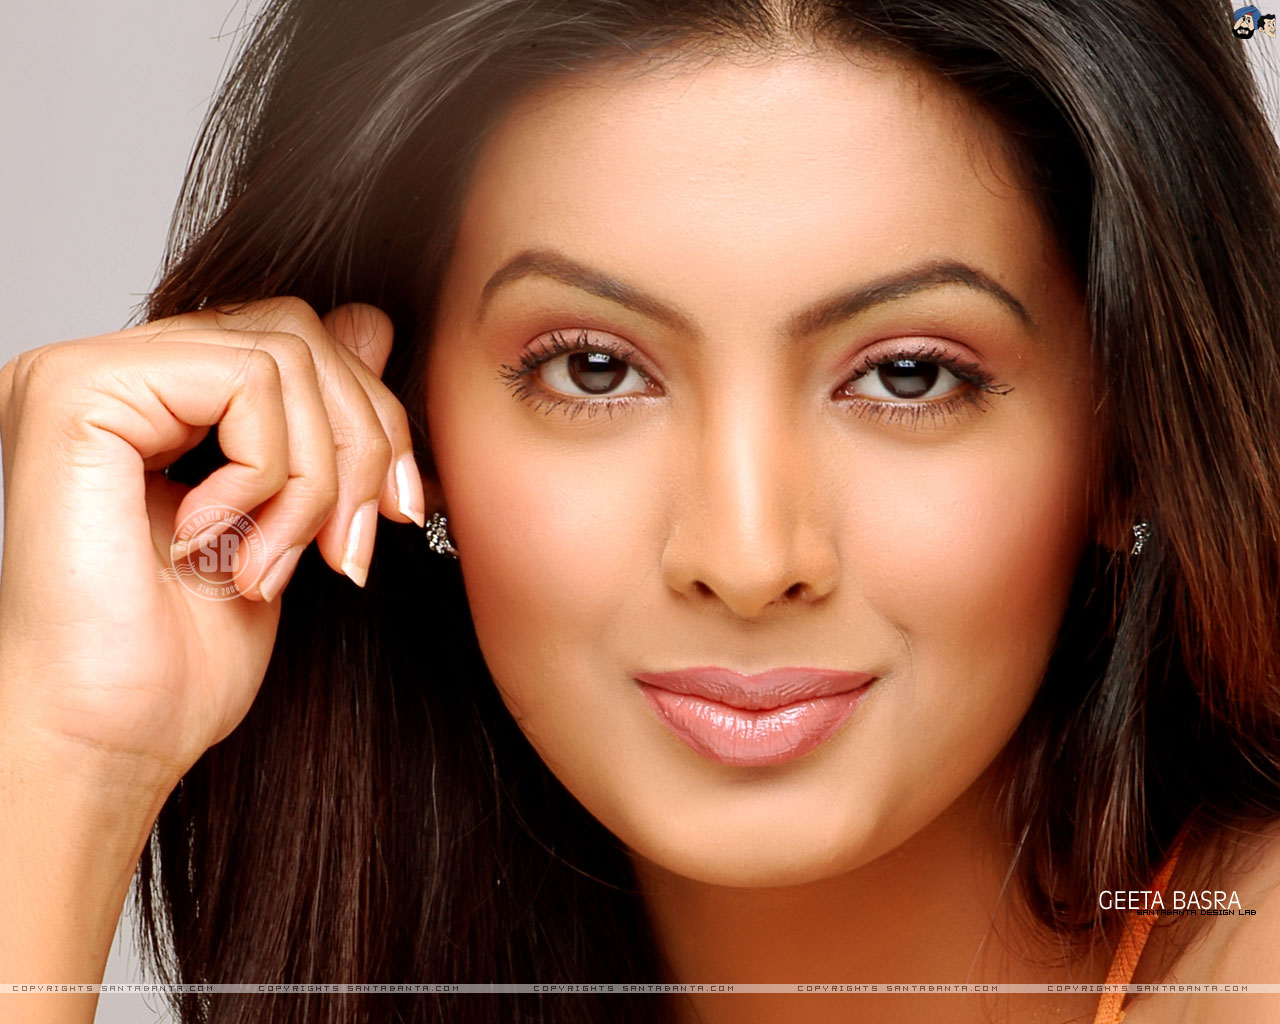 Desktop Wallpapers Bollywood: Bollywood Wallpapers Actress